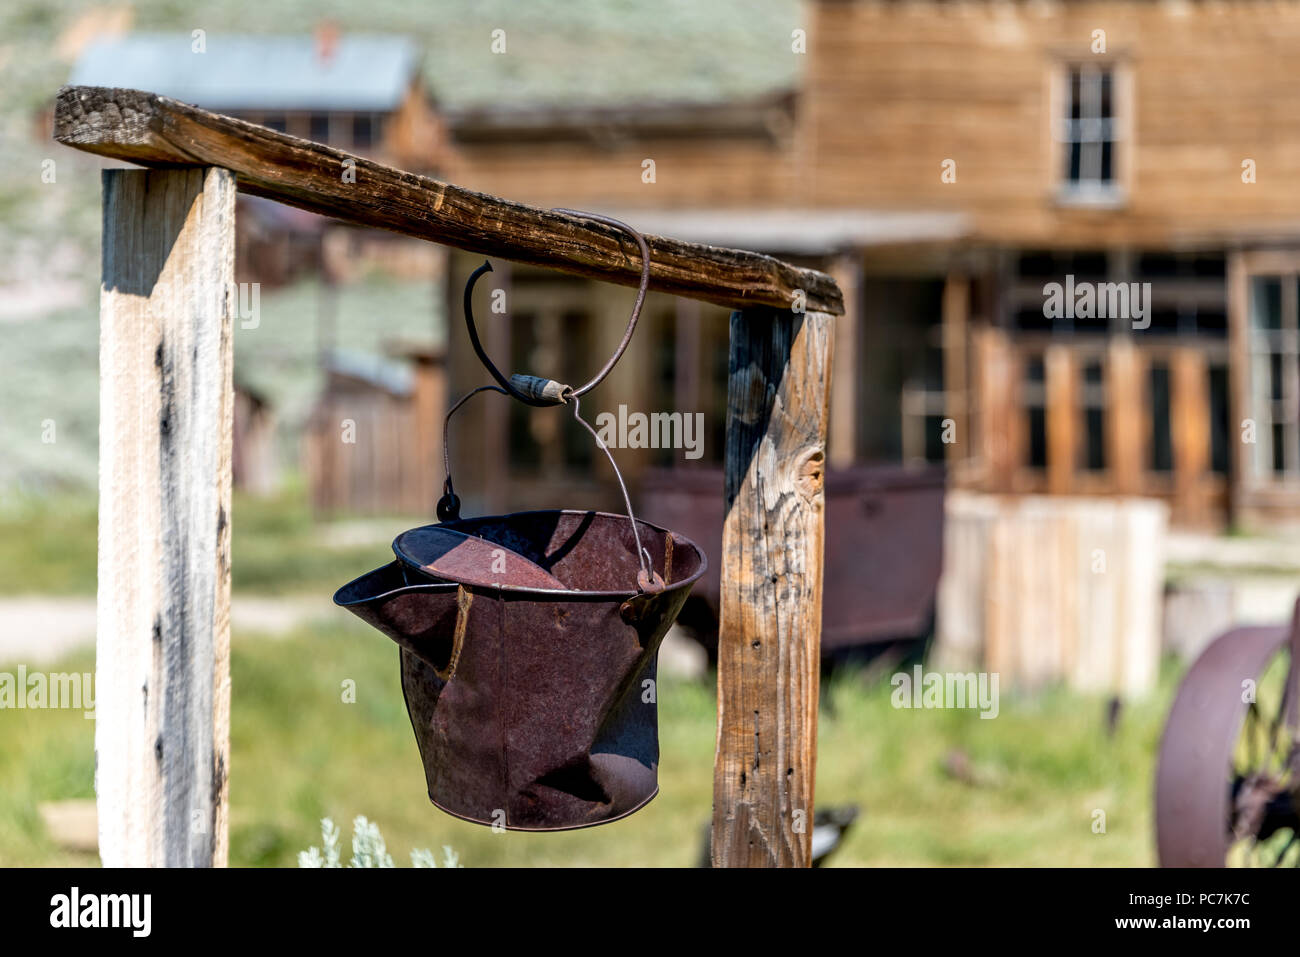 A rusty pail hangs above a one-time well in the abandoned California ghost town of Bodie, now a state historic park in the eastern Sierra Mountains. - Stock Image